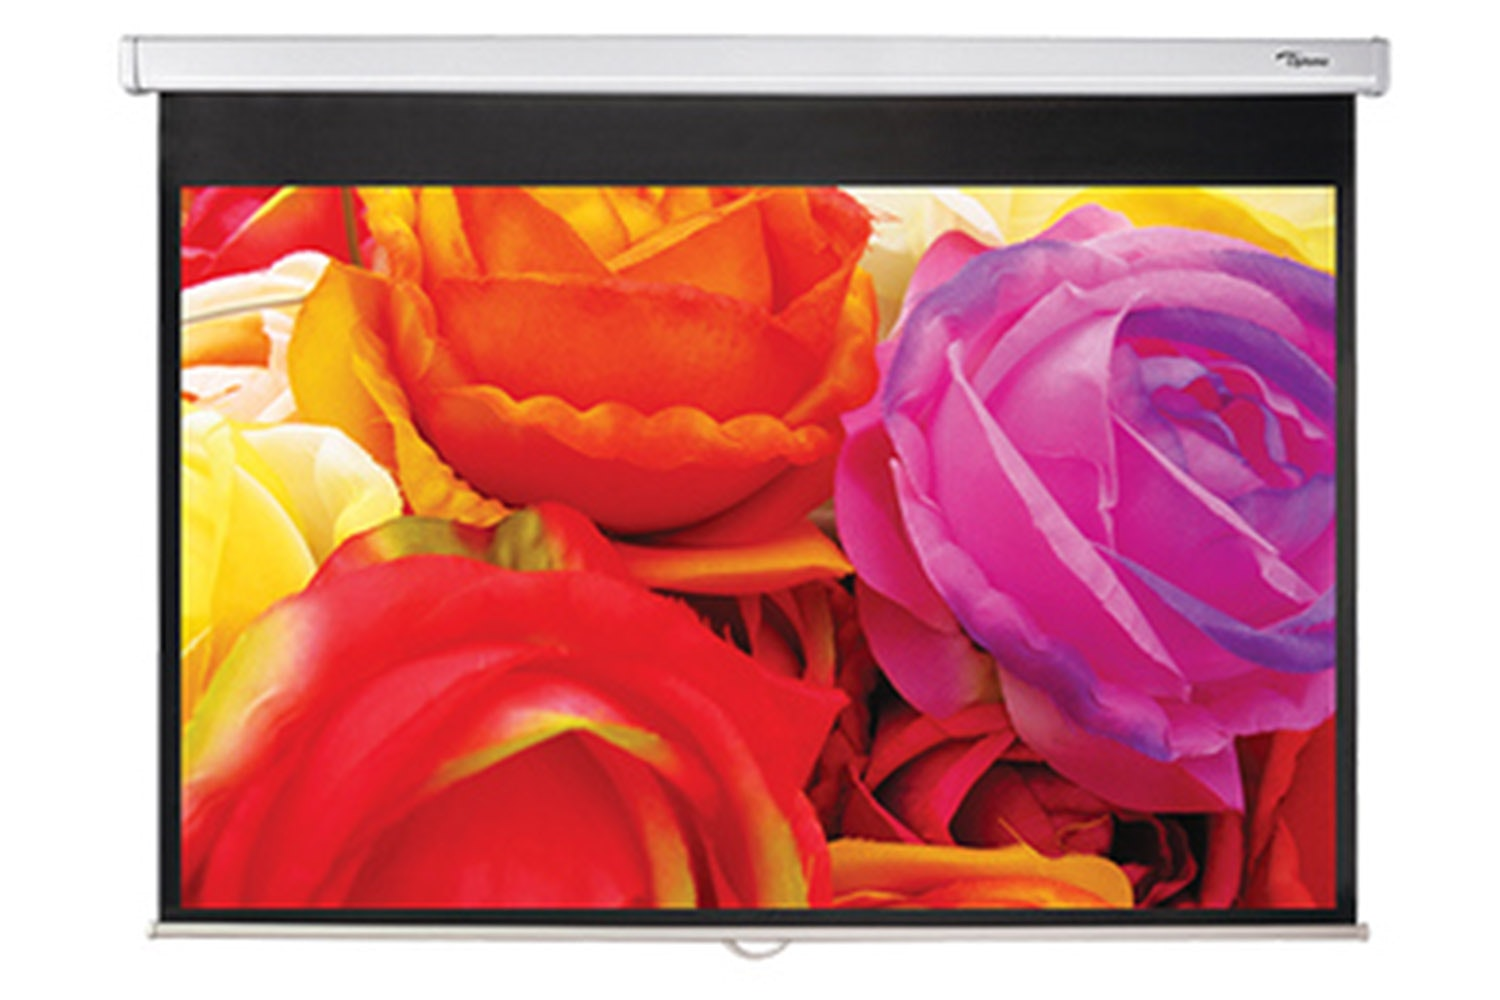 OPTOMA 95 INCH 16-10 SCREEN